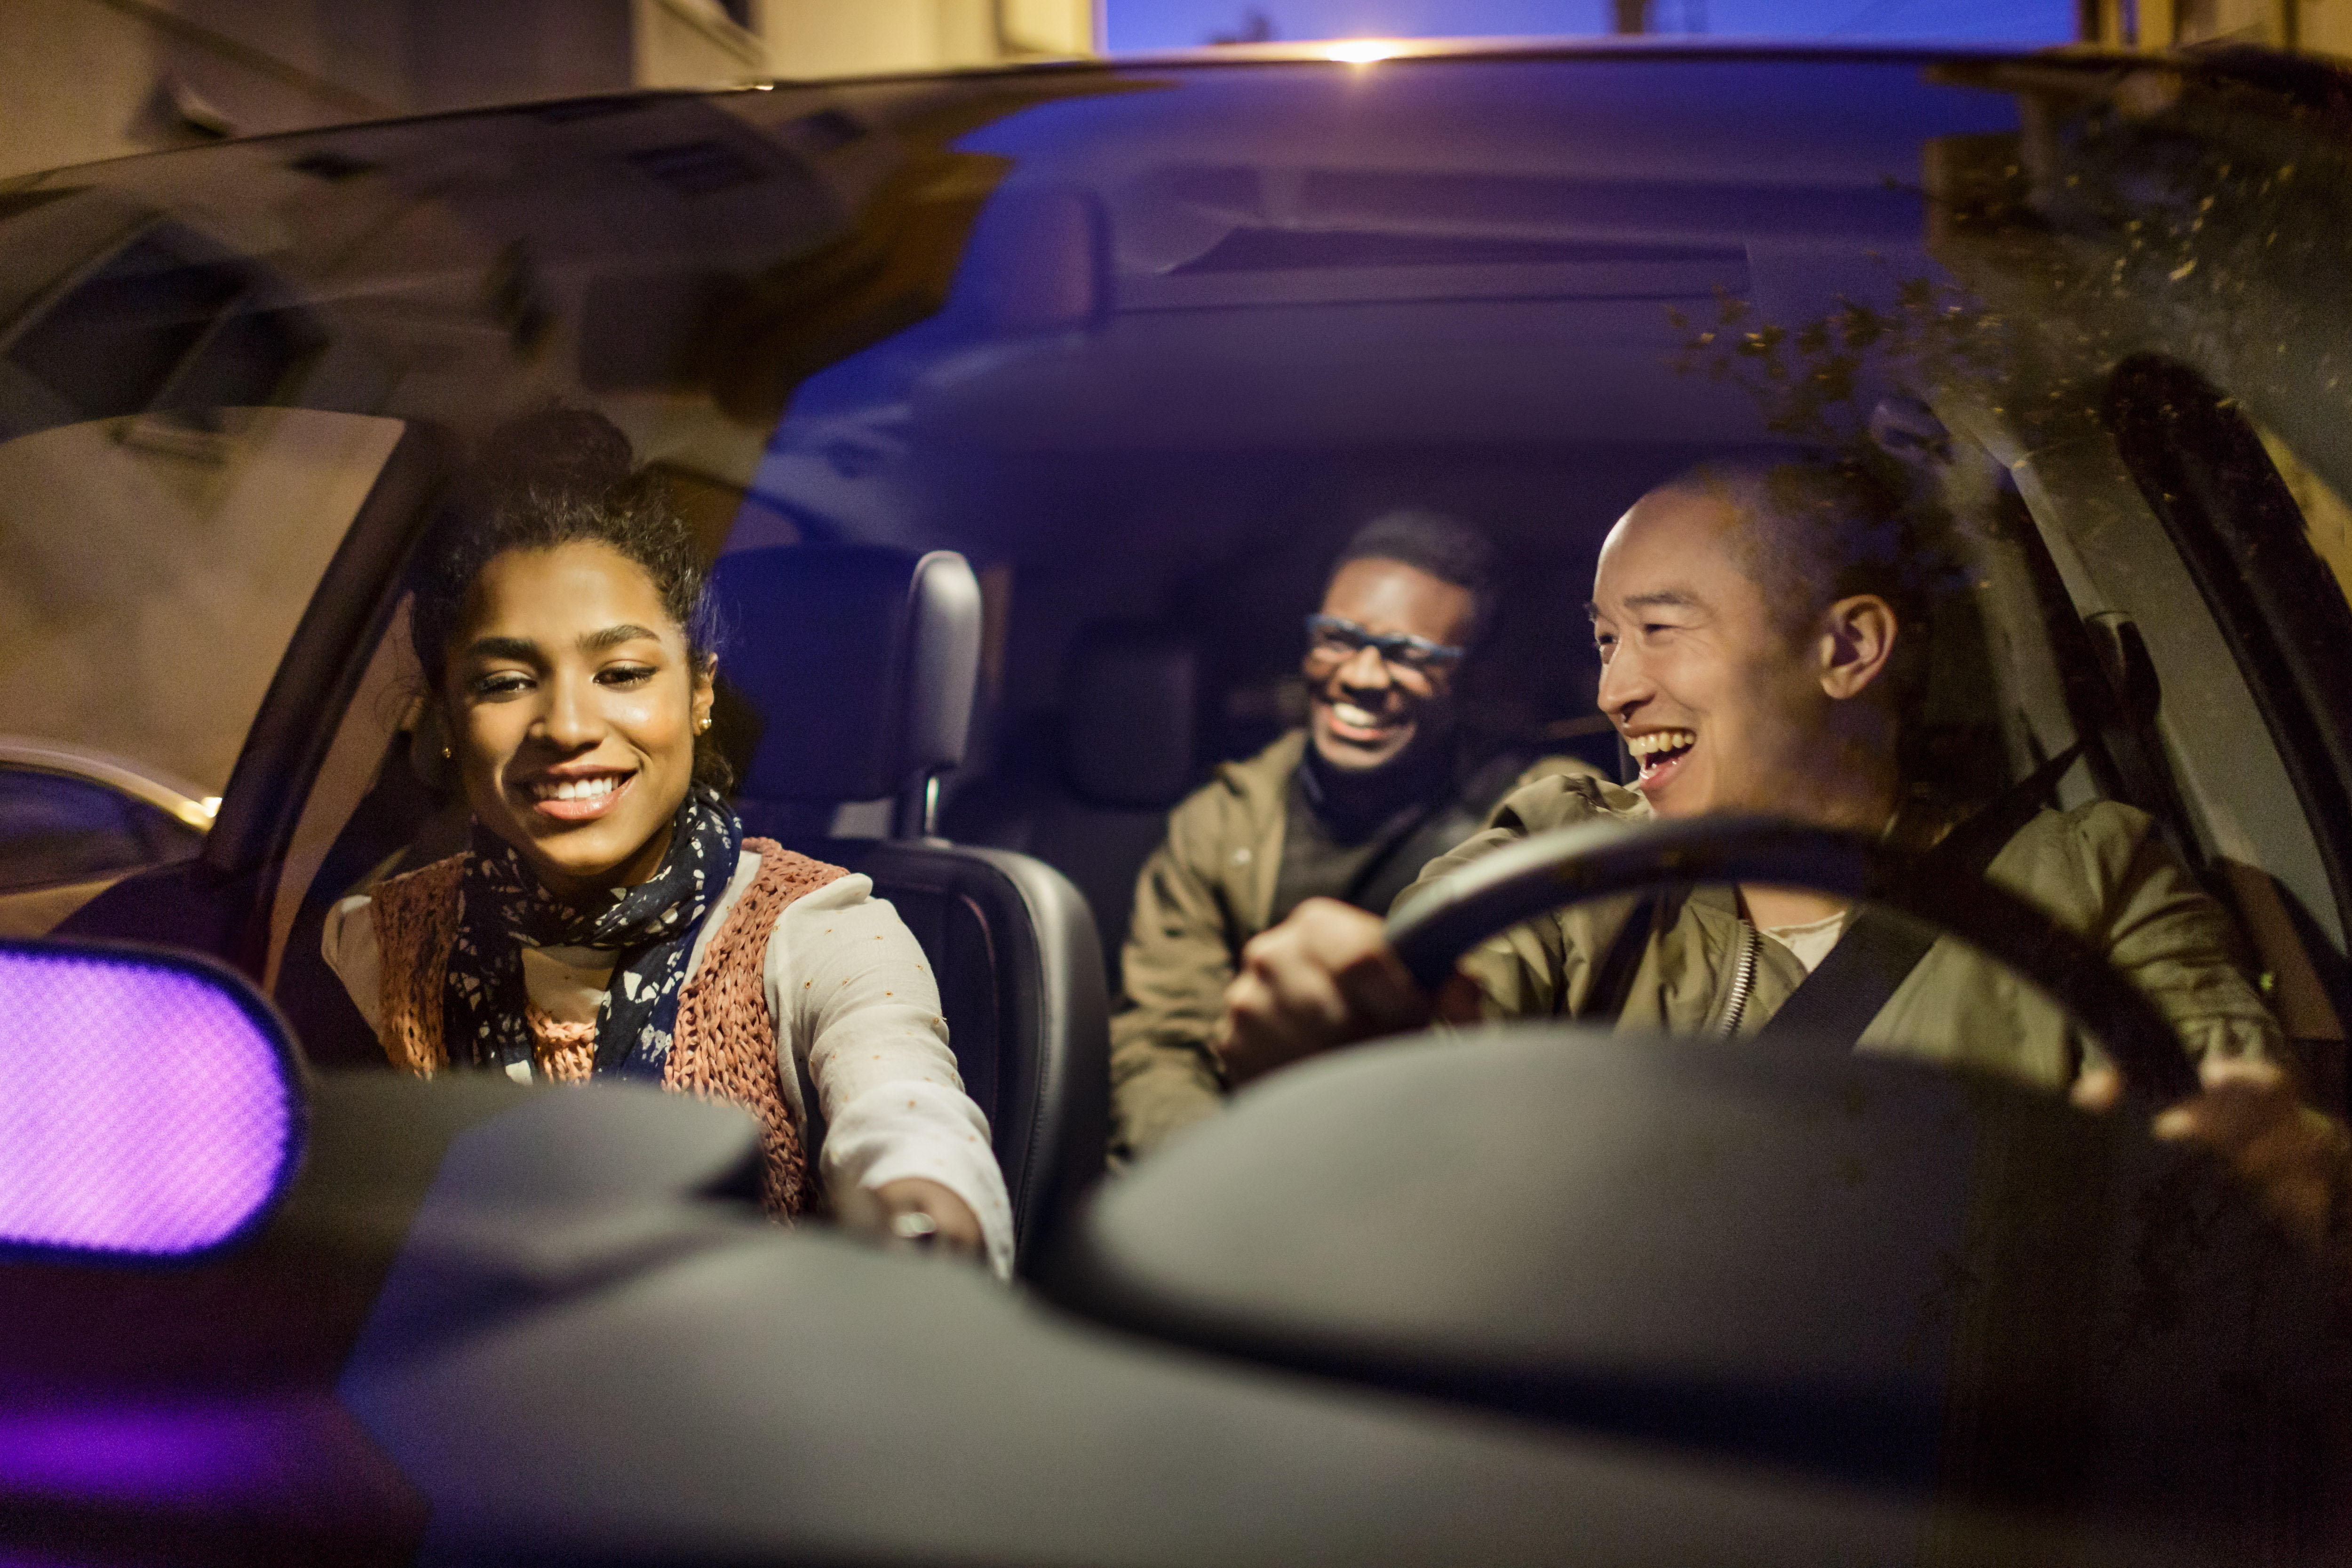 Lyft is testing monthly subscriptions for riders